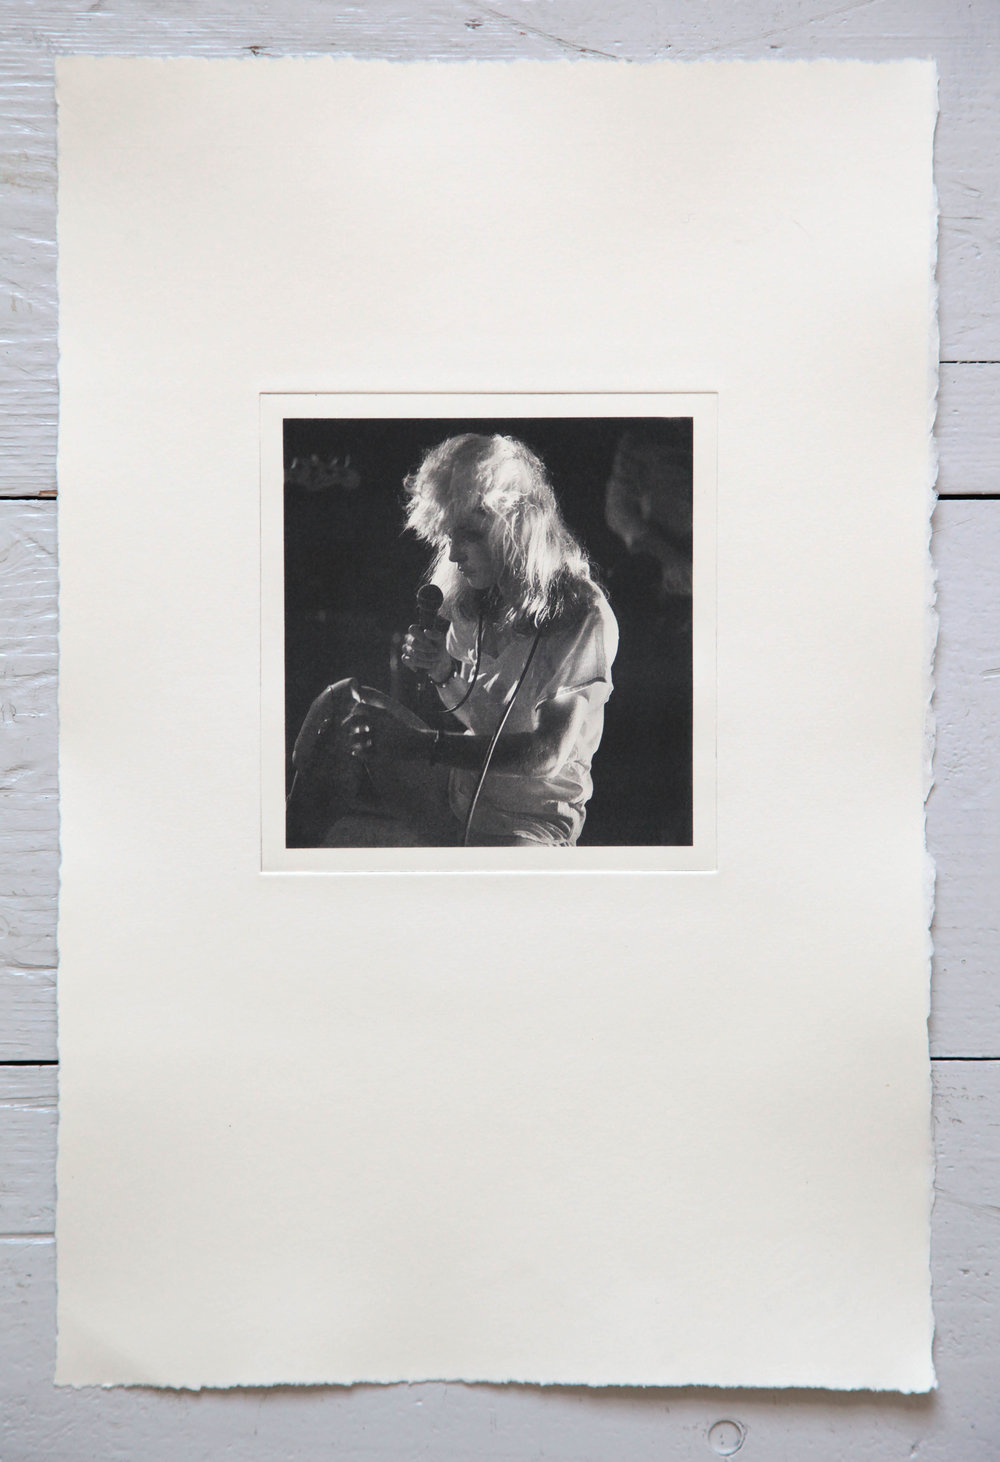 £500 Unique A3 photogravure print: Debbie Harry, Roundhouse 1978. Artist's Proof, signed by Philip Grey + your name on our founders' wall. - Originally photographed during the band's first major UK tour at London's Roundhouse, round the corner from darkroom. This shot of the Blondie singer has been made into a photogravure print and this is your opportunity to acquire a unique artist's proof signed by the photographer.